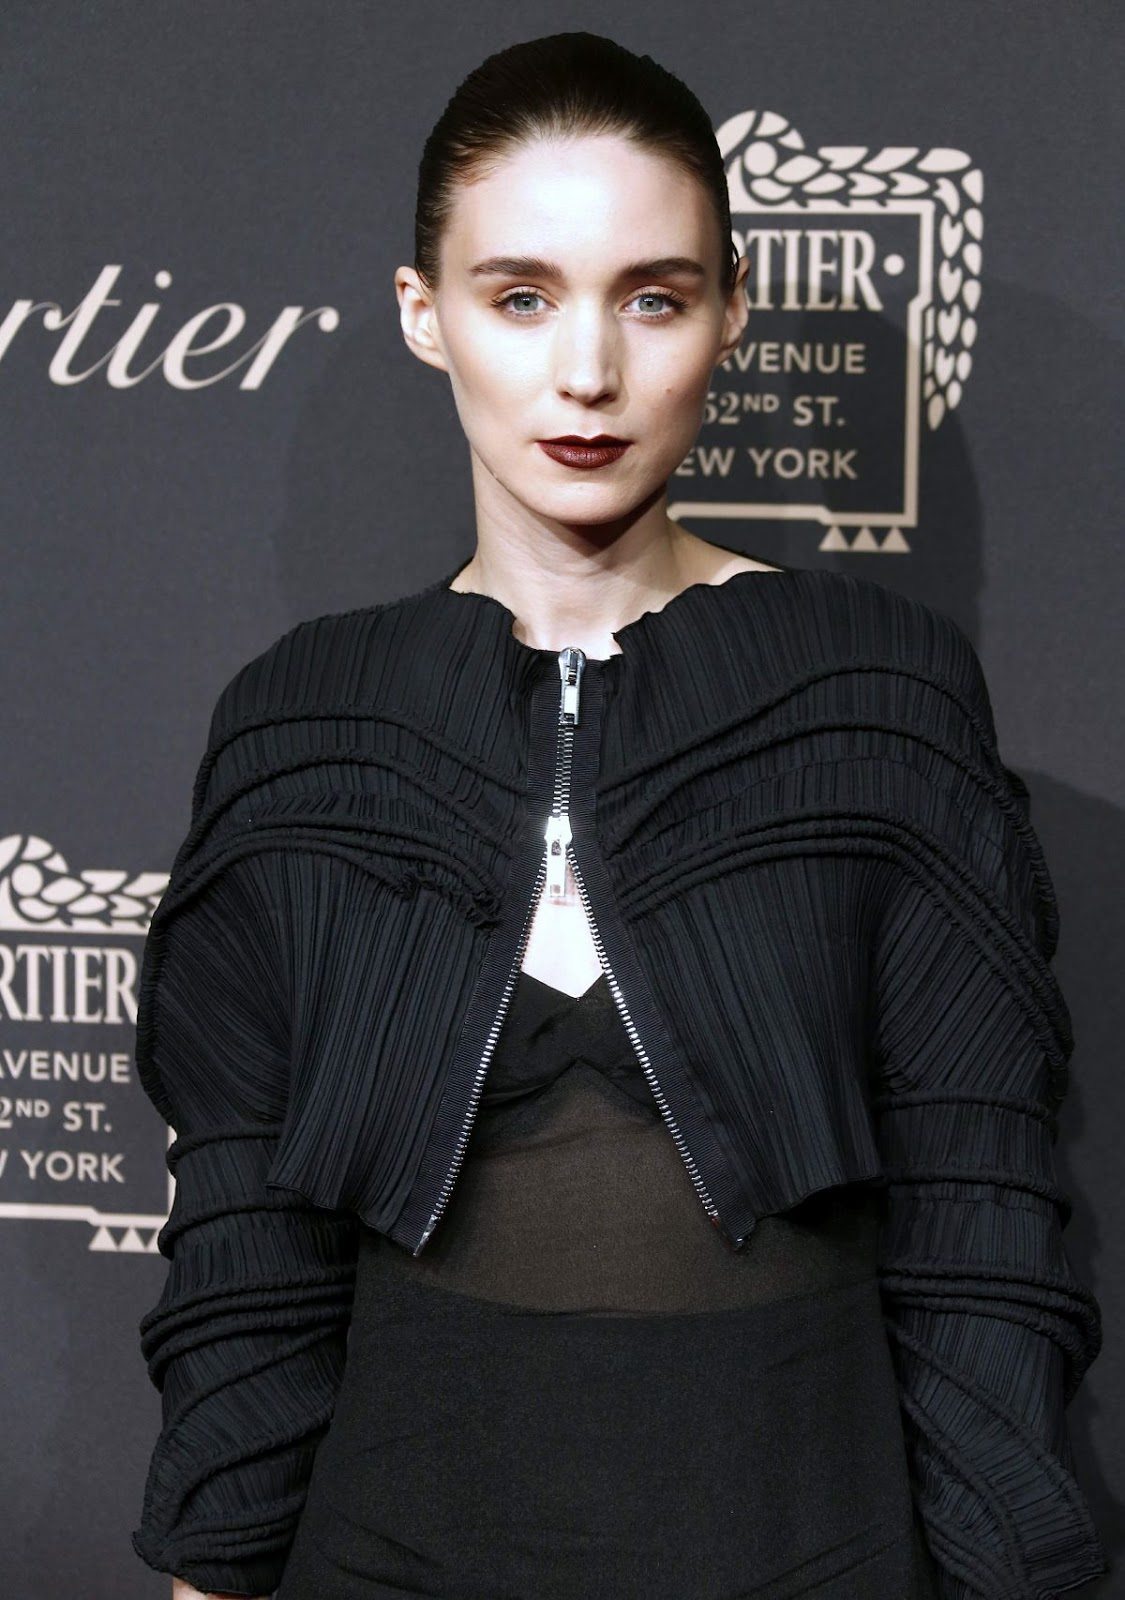 HQ Photos of Rooney Mara At Cartier Store Grand Reopening On Fifth Avenue In New York